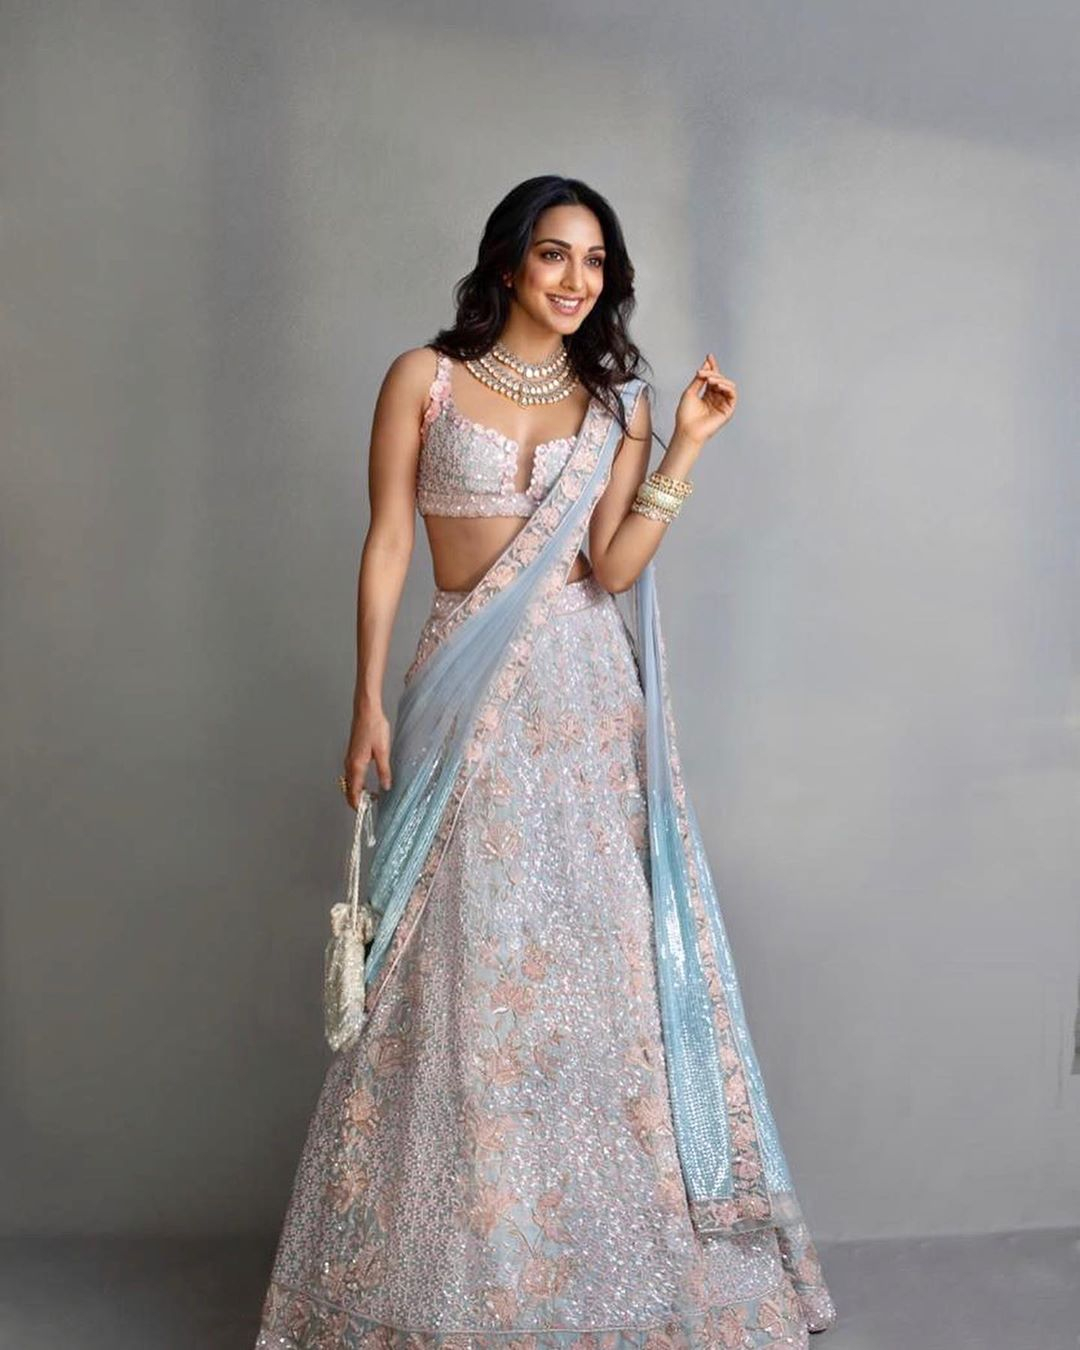 Kiara Advani in Pastle pink Lehenga